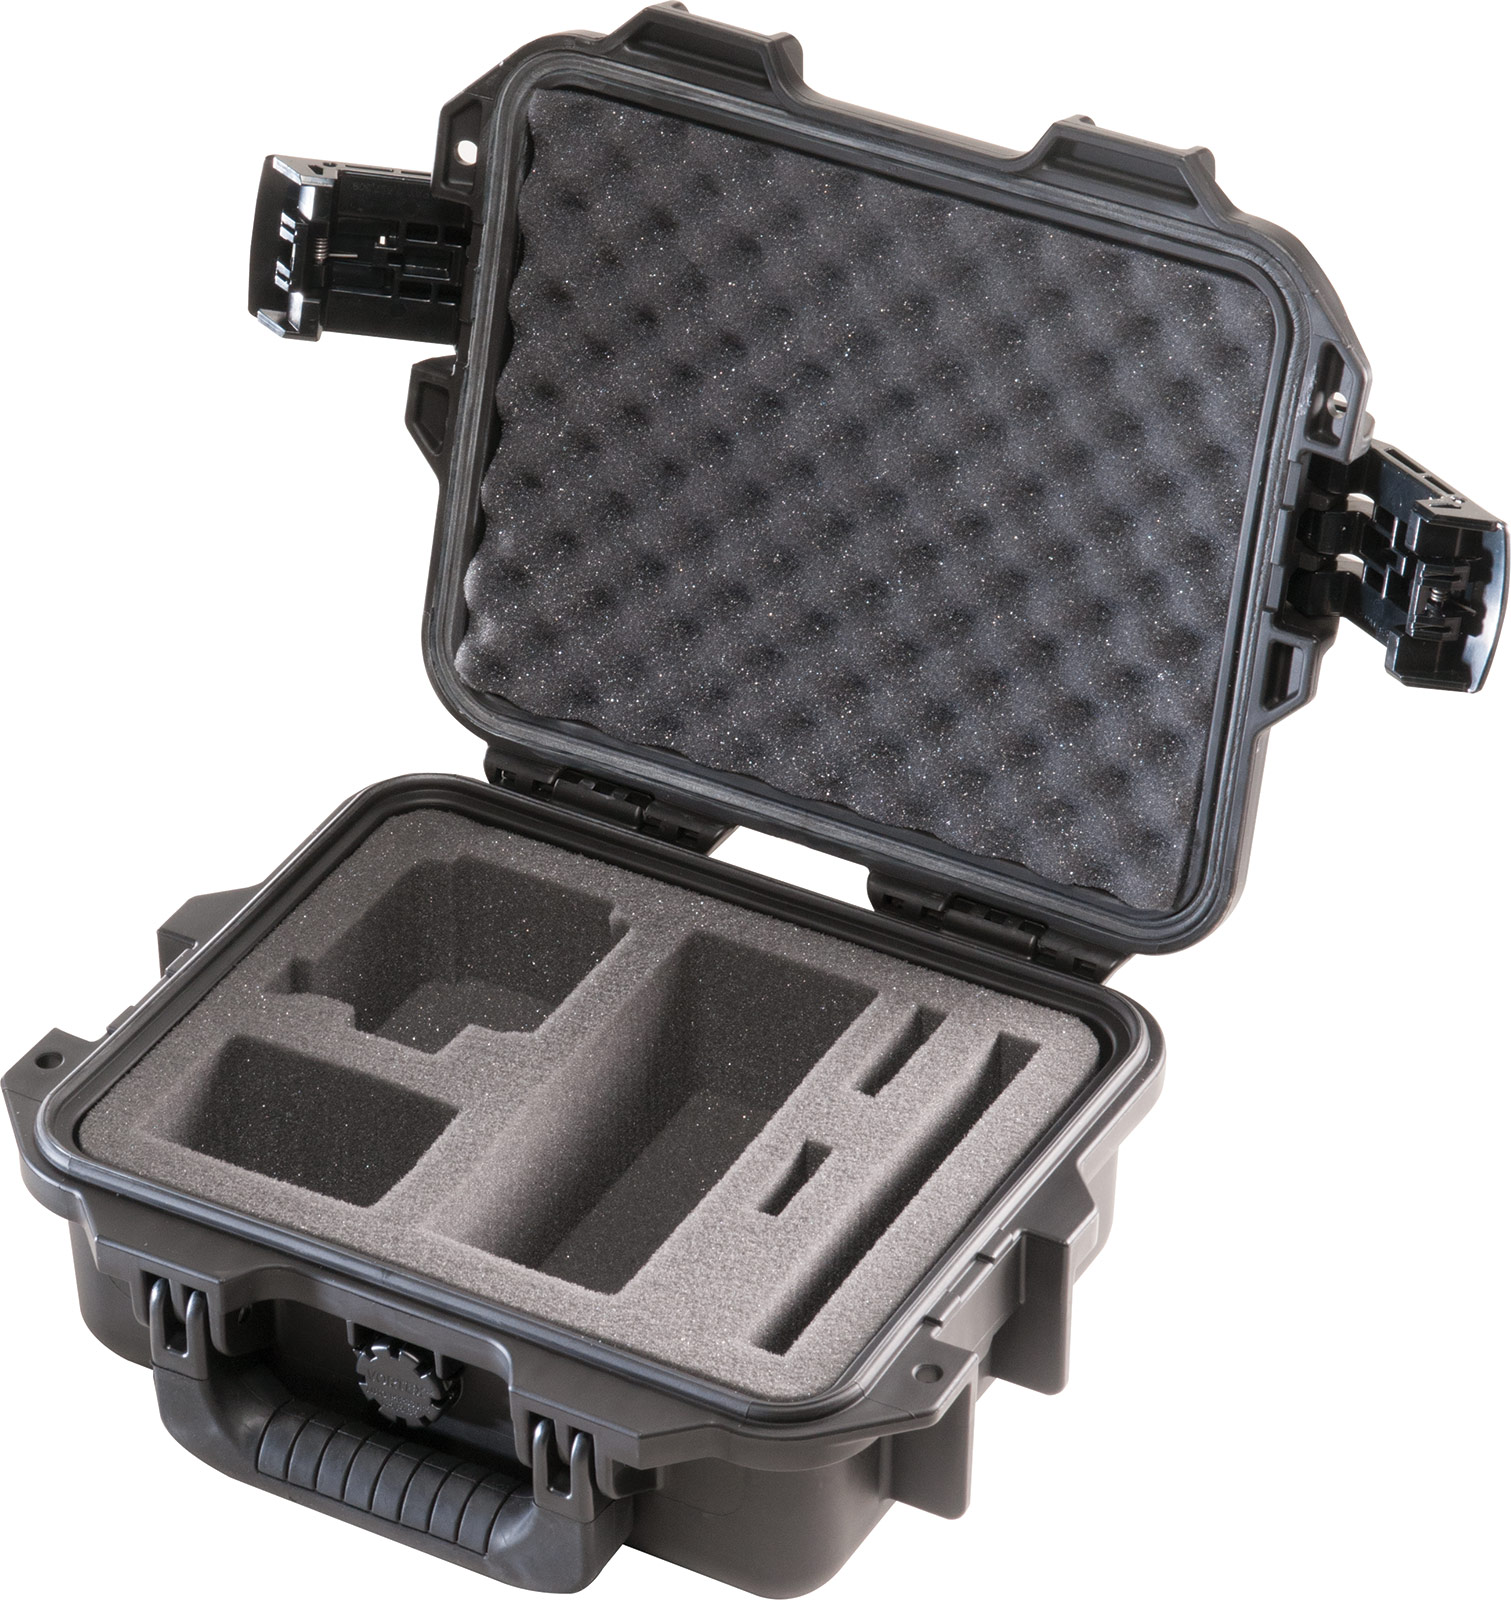 pelican im2050gp1 go pro foam small case